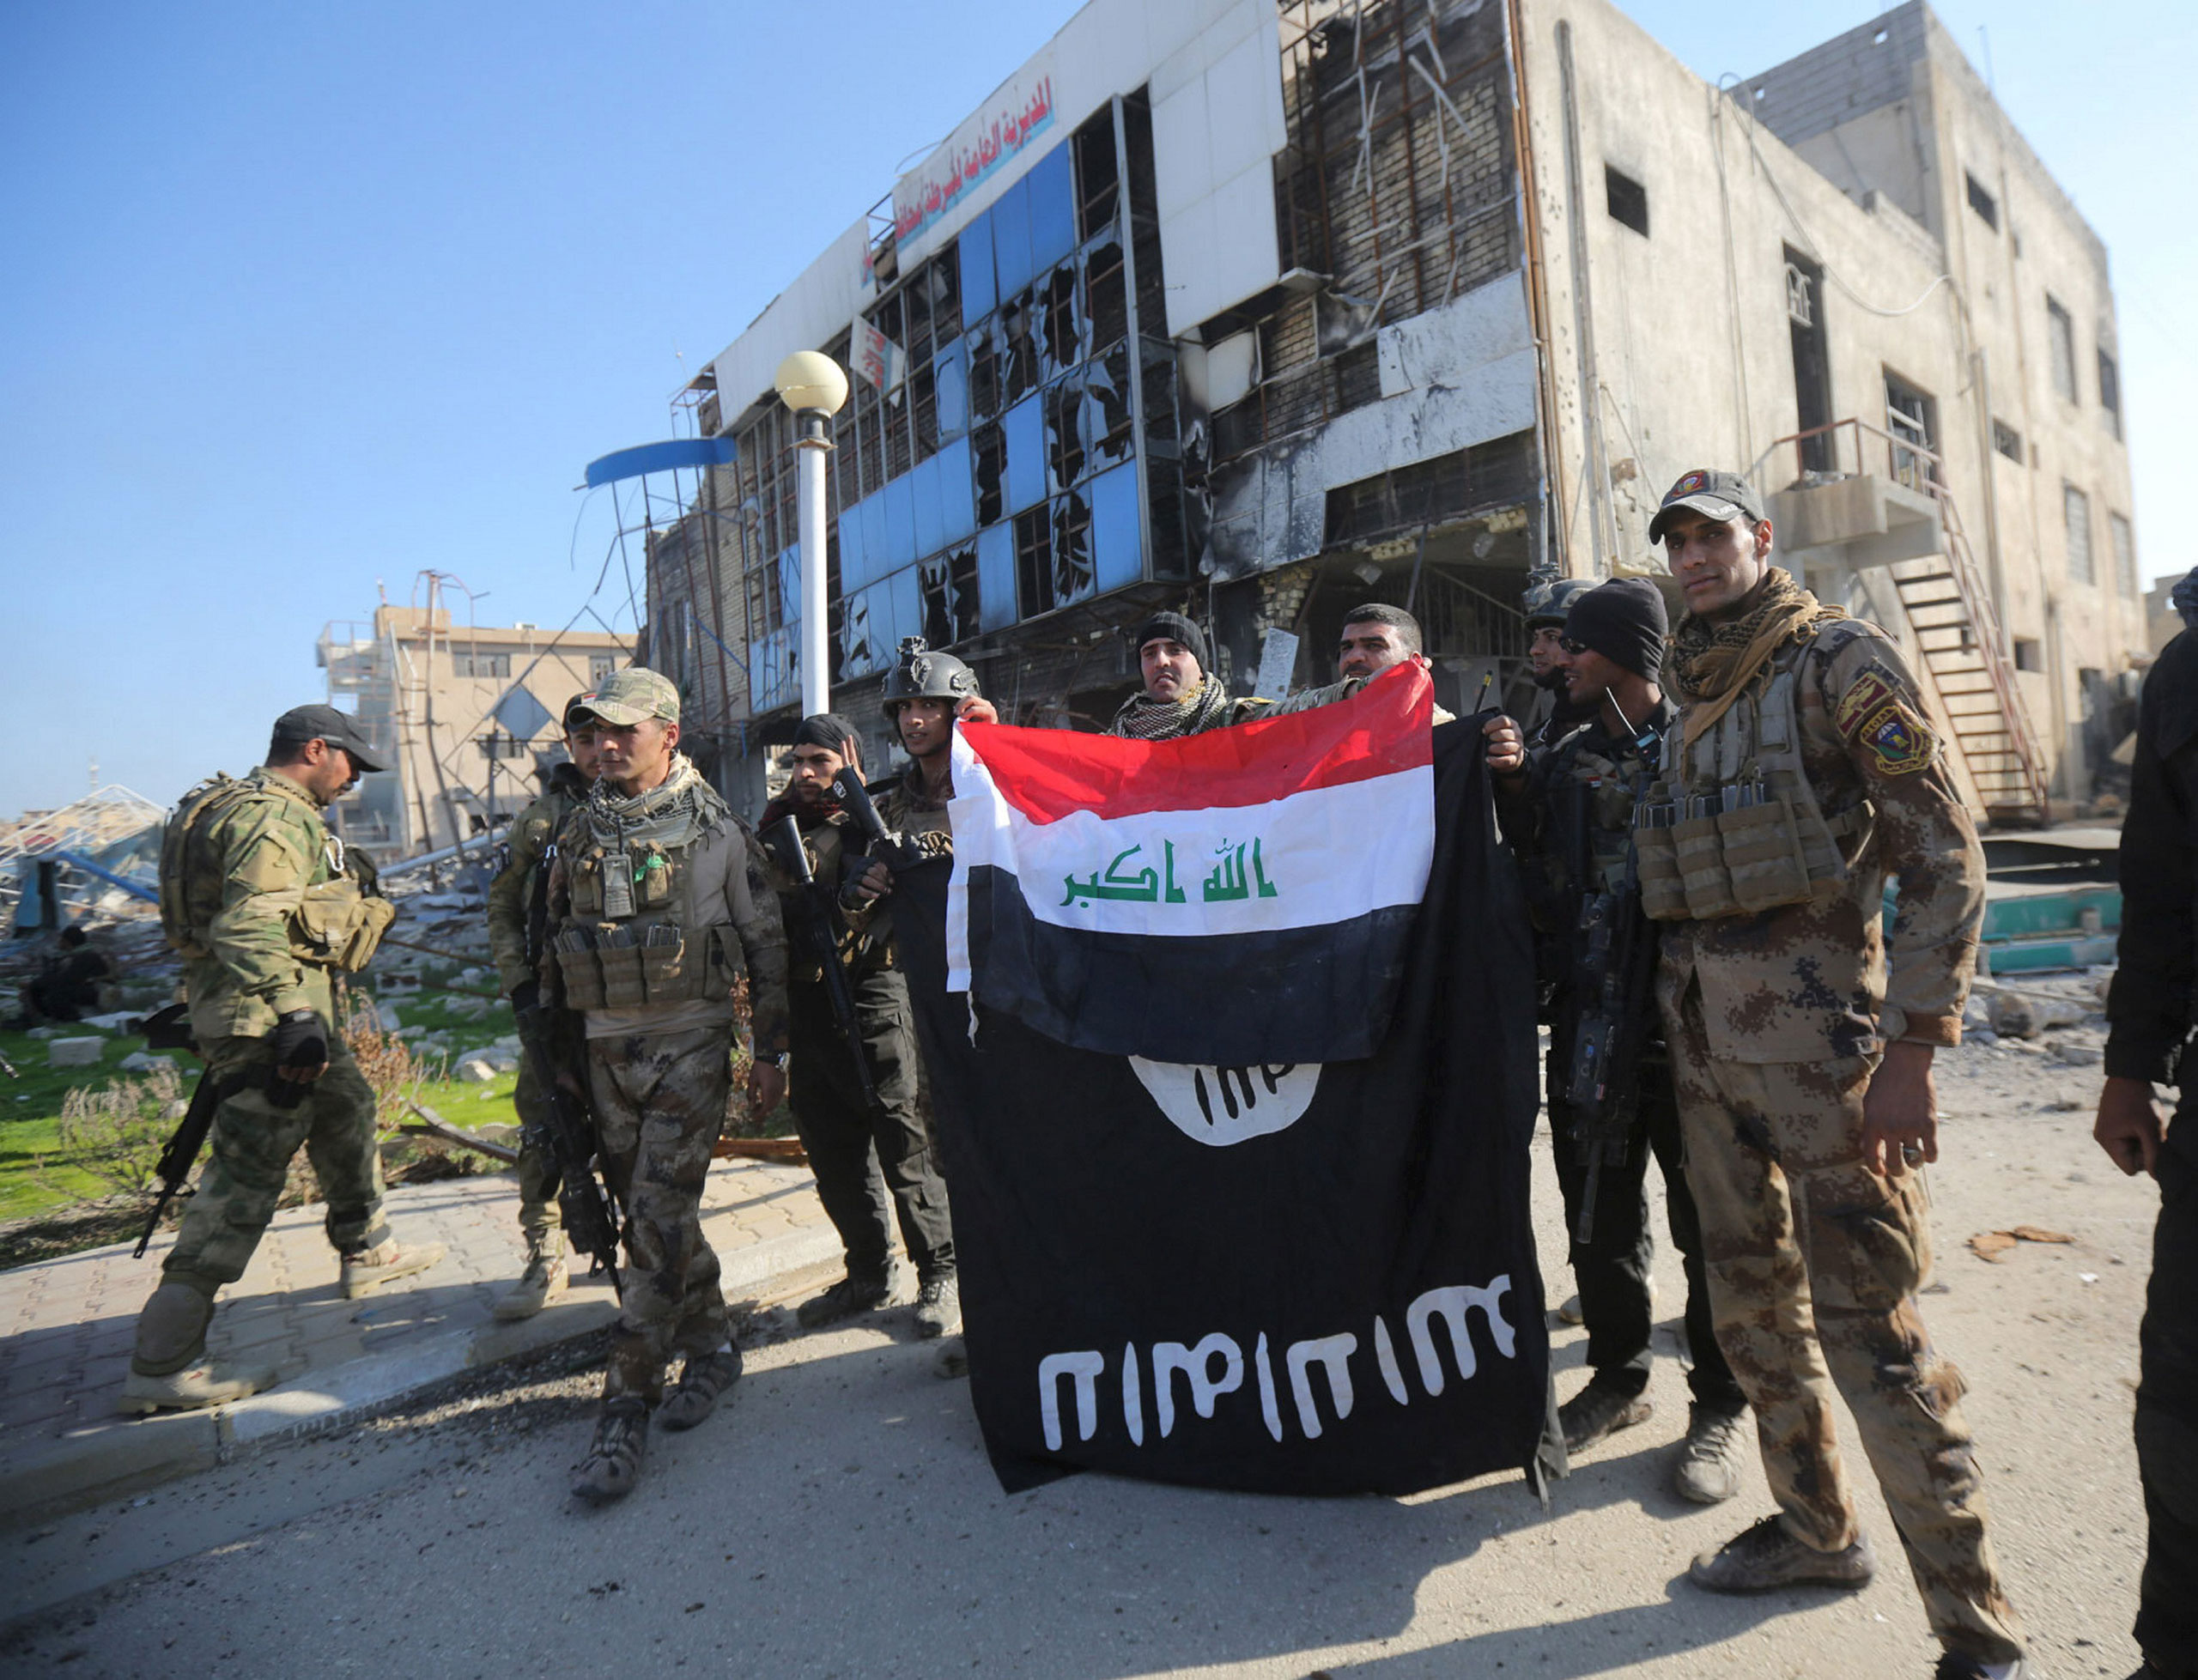 Members of the Iraqi security forces hold an Iraqi flag with an Islamic State flag which they had pulled down at a government complex in the city of Ramadi on Dec. 28, 2015.